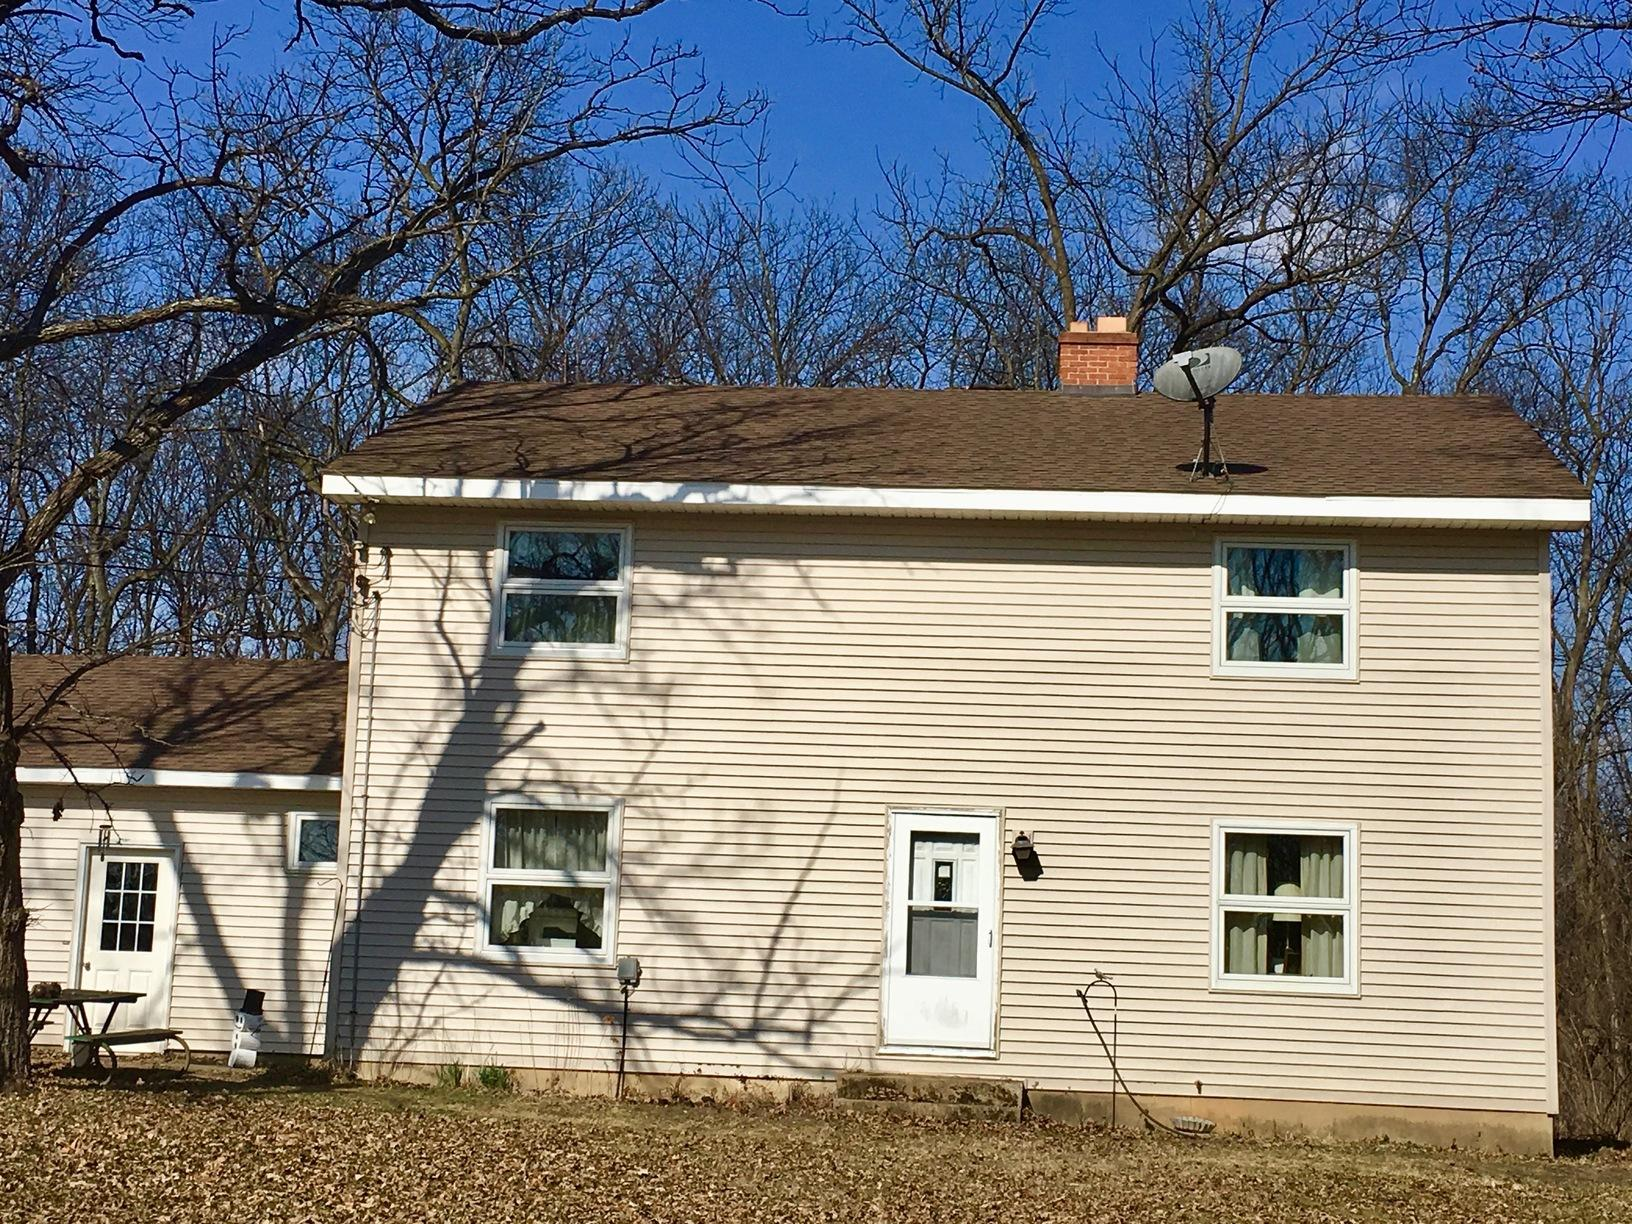 New Roof & Siding in Chana, IL - After Photo